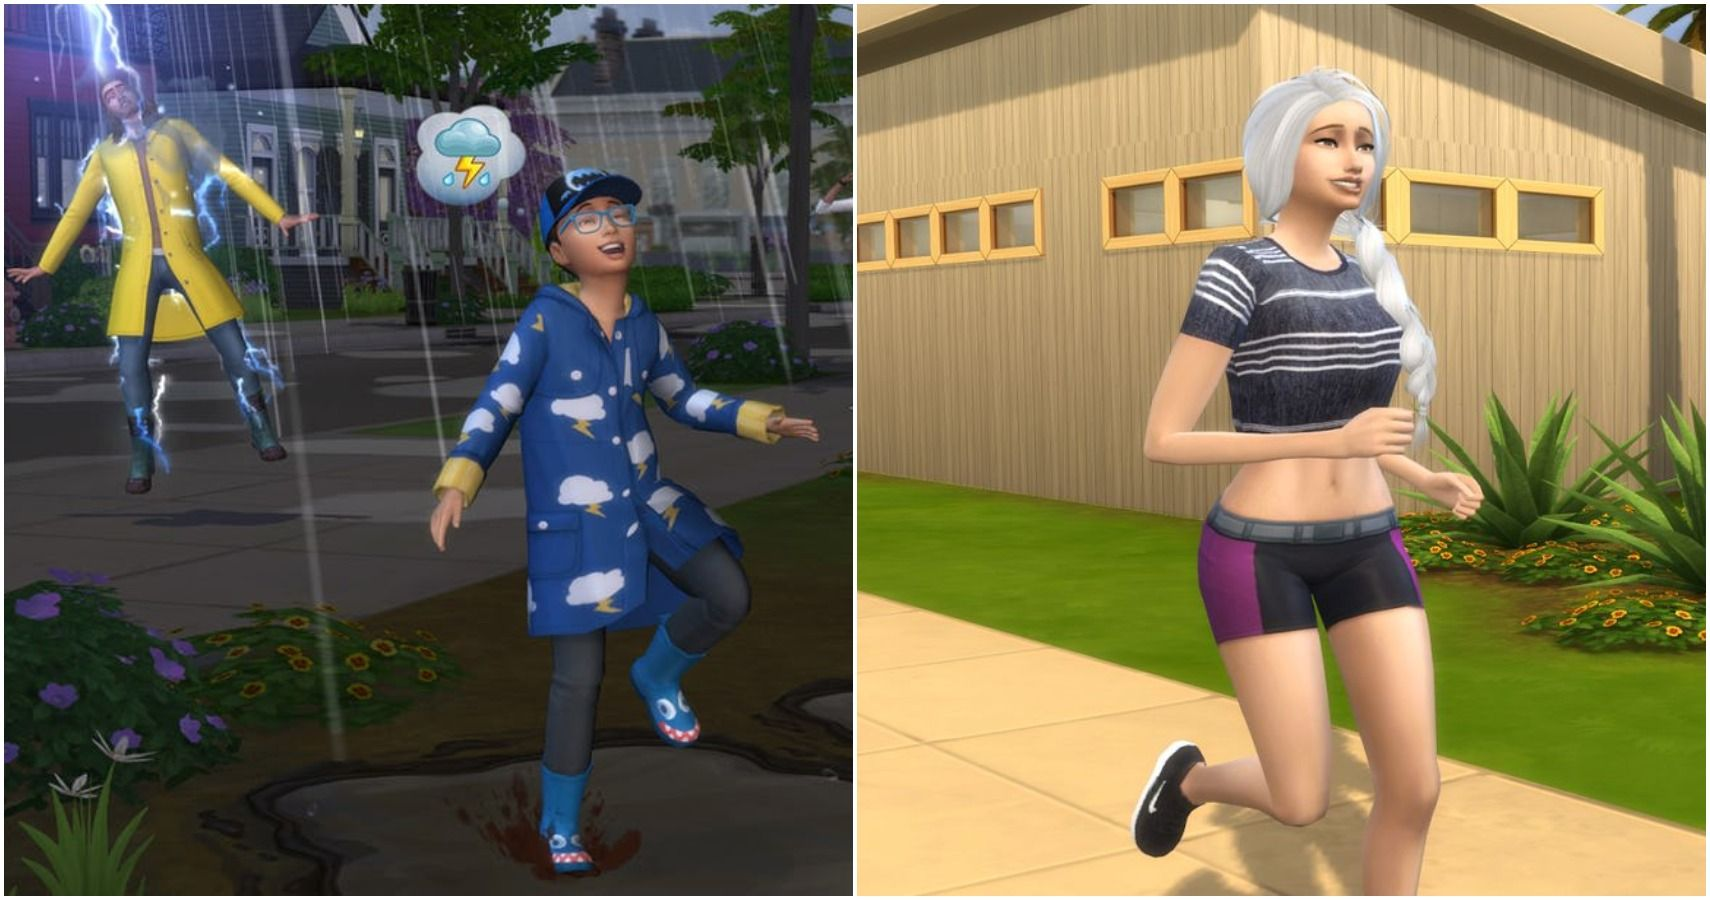 The Sims 4: 20 Must Have Mods For Better Gameplay TheGamer